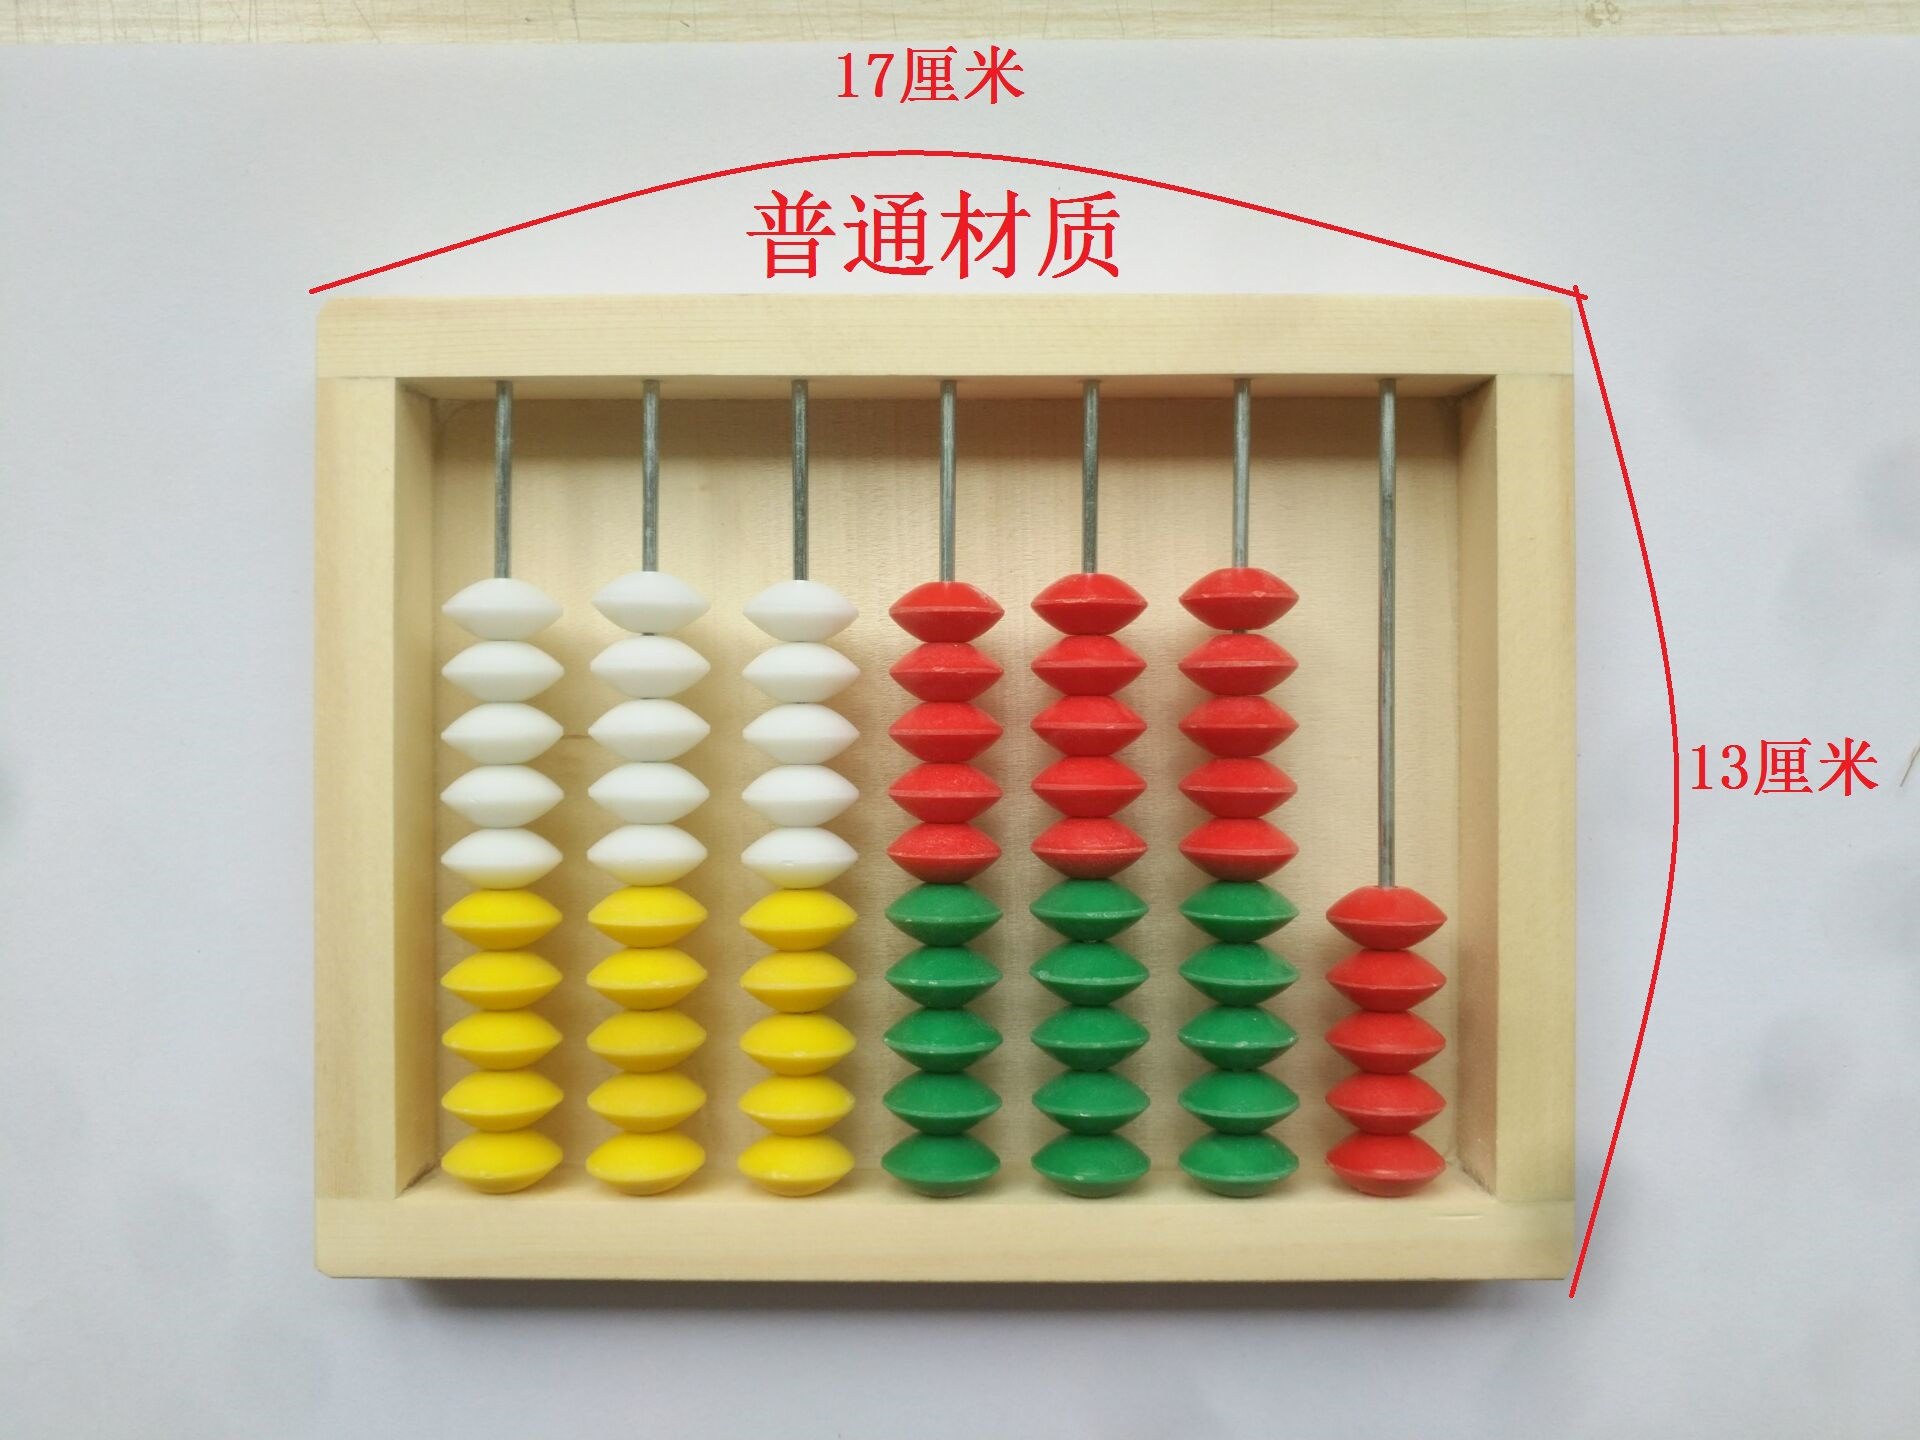 Teaching Toys Abacus Single Calculation Young CHILDREN'S Teaching Aids Double Row Rack Ten Beads May Make Wall Chart Style Anti-